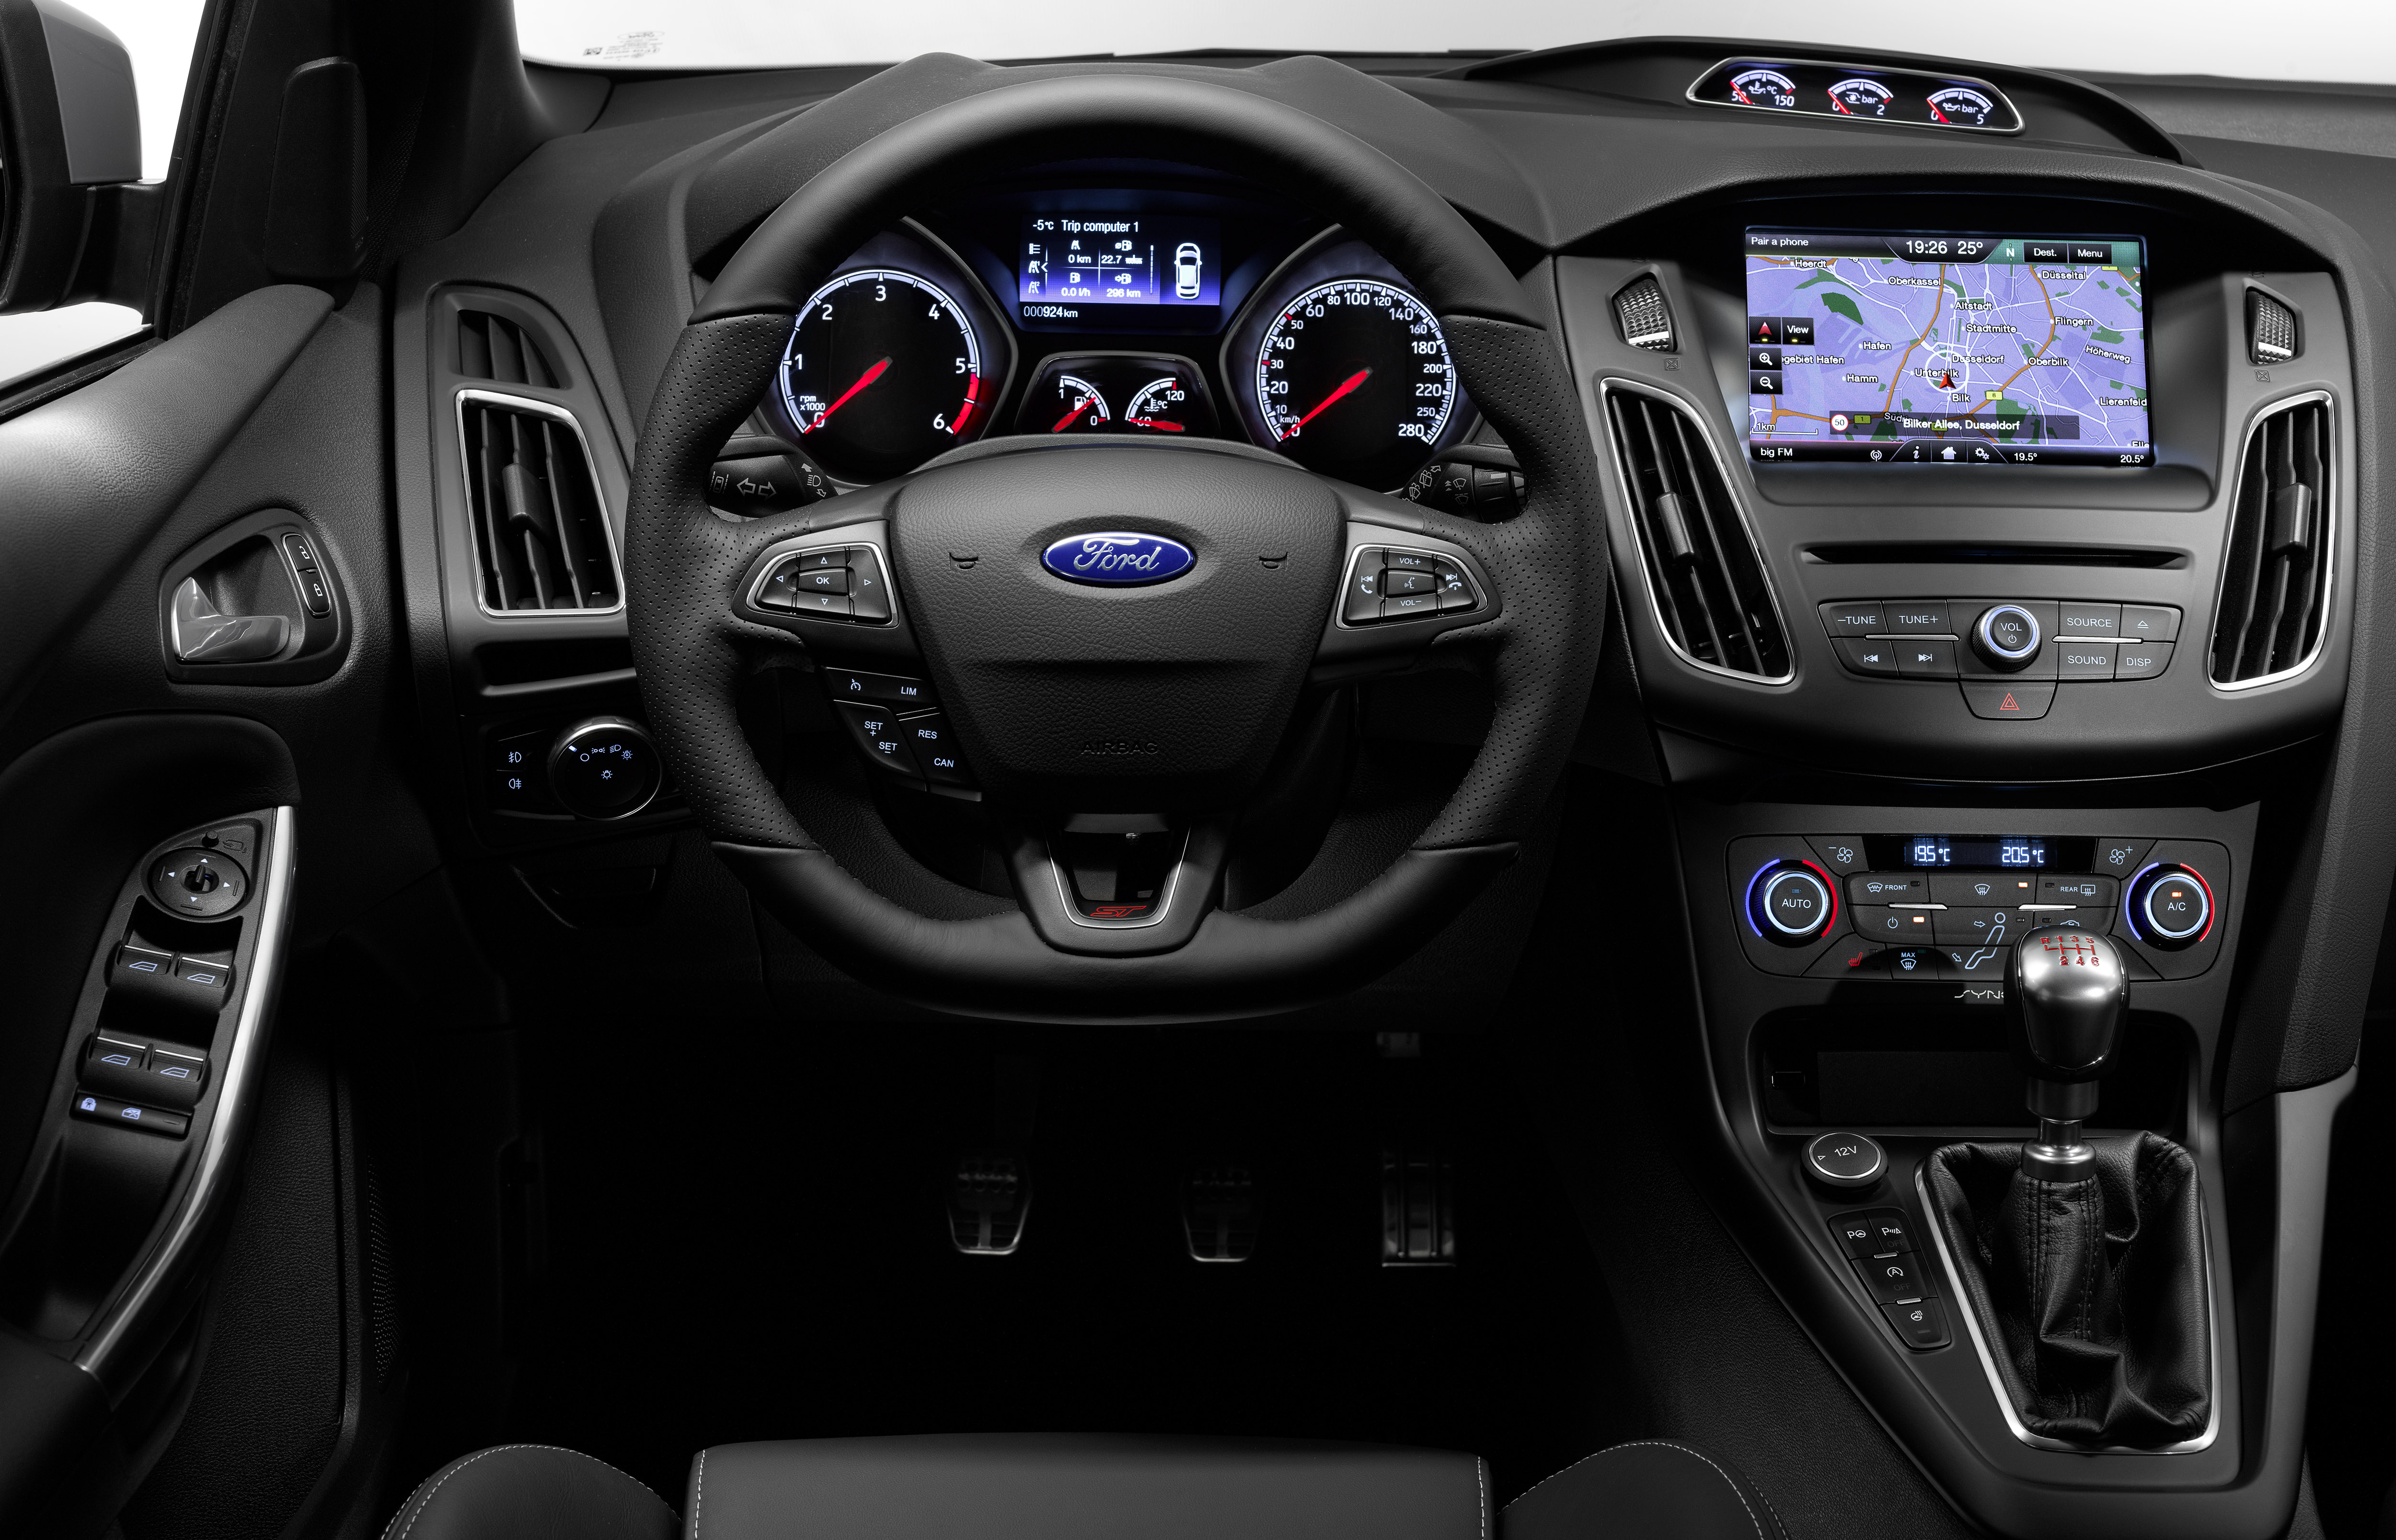 Ford Focus Cabin